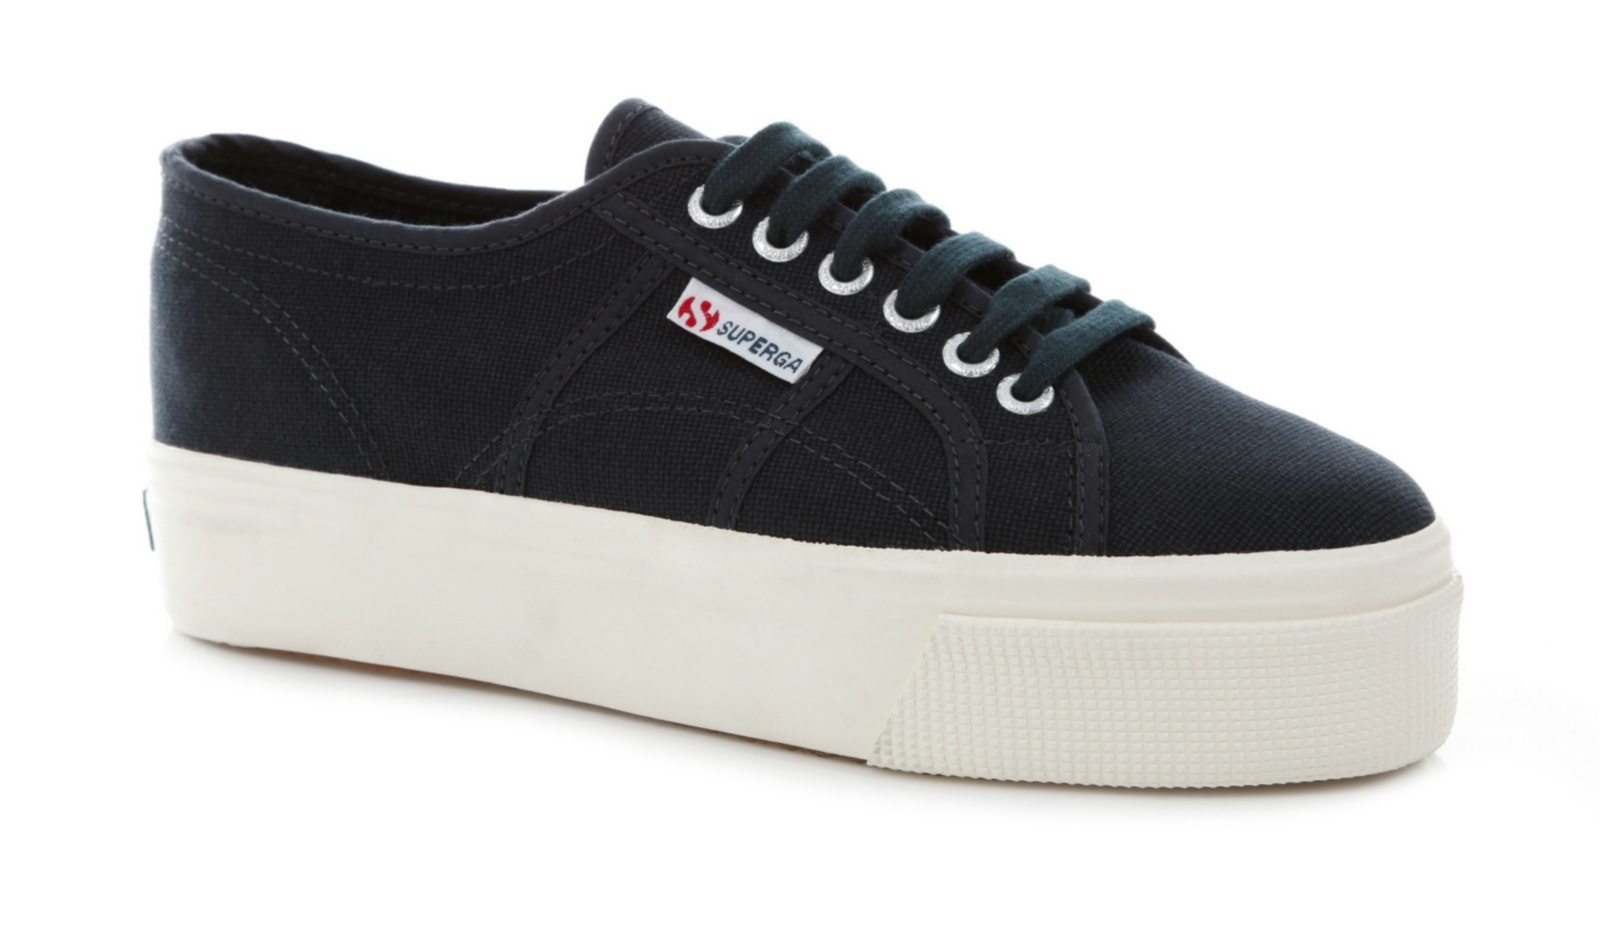 superga womens 2790 linea up down lace up canvas rubber sole shoes ebay. Black Bedroom Furniture Sets. Home Design Ideas